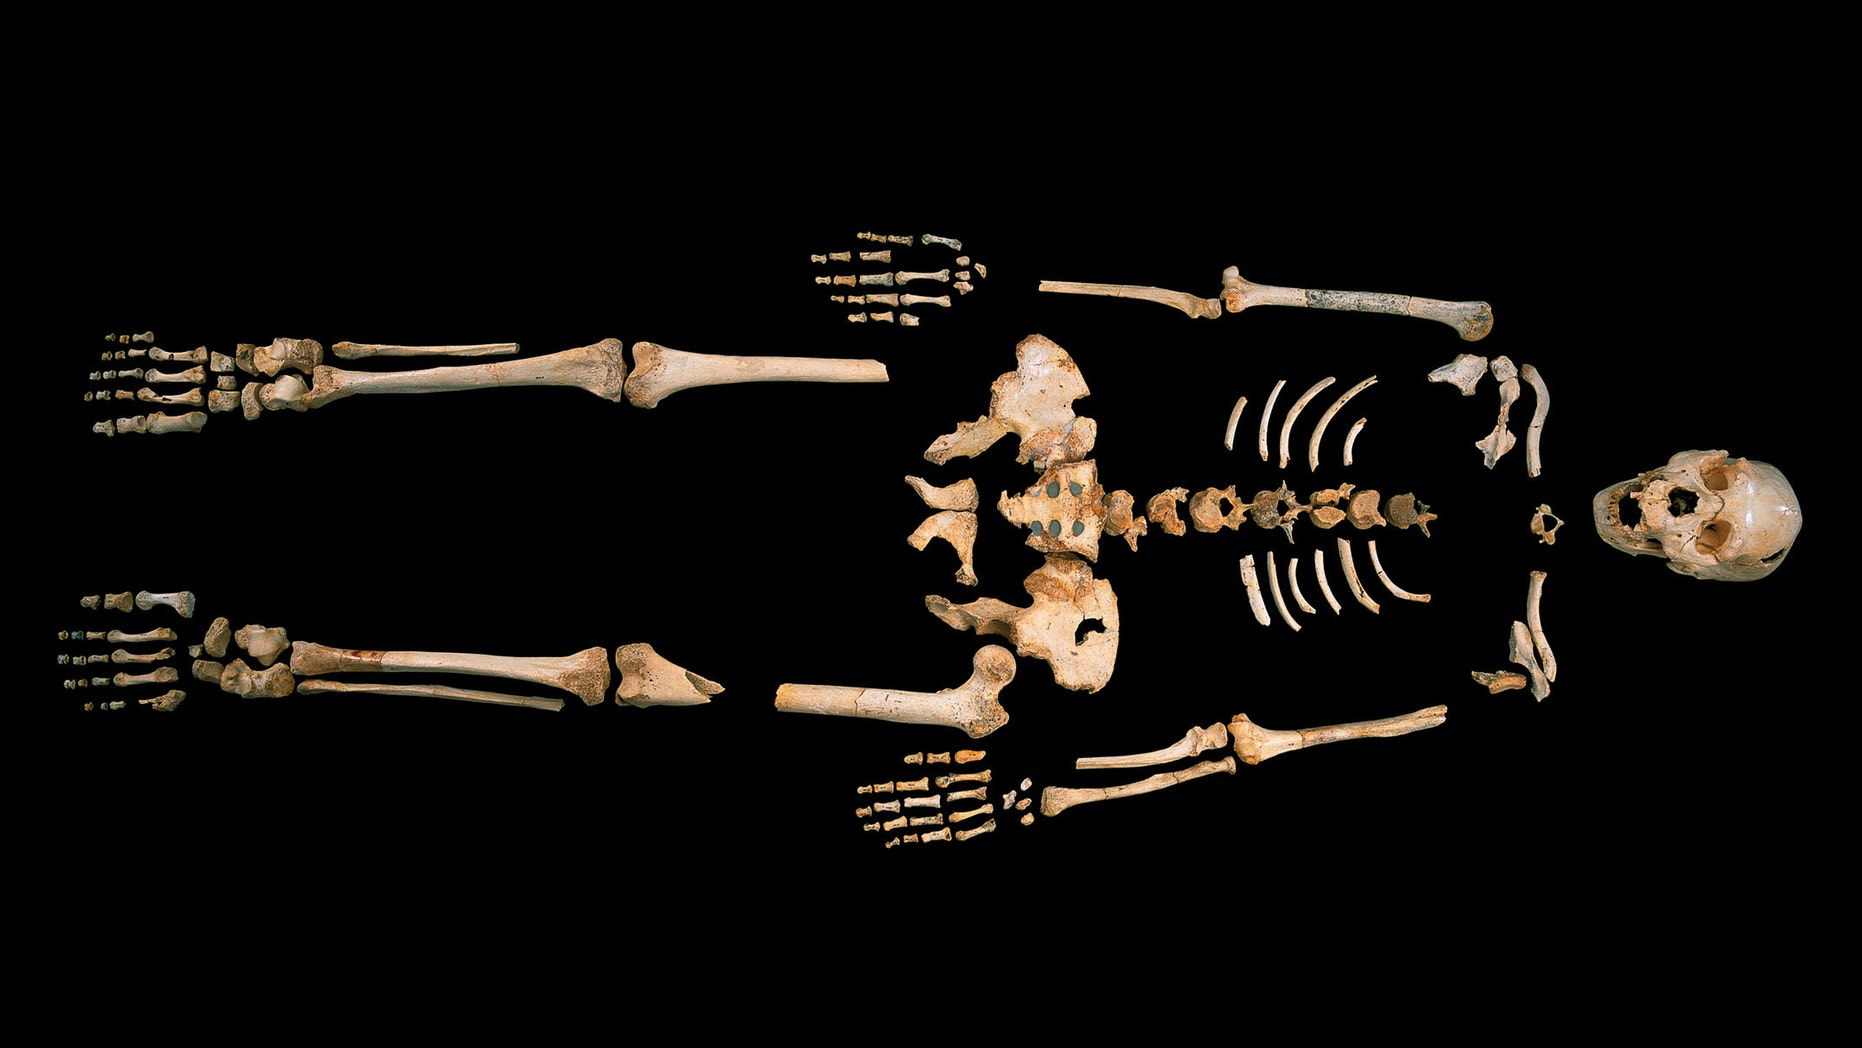 Skeleton of a hominin estimated to be 400,000-years-old, excavated from Sima de los Huesos, Spain.